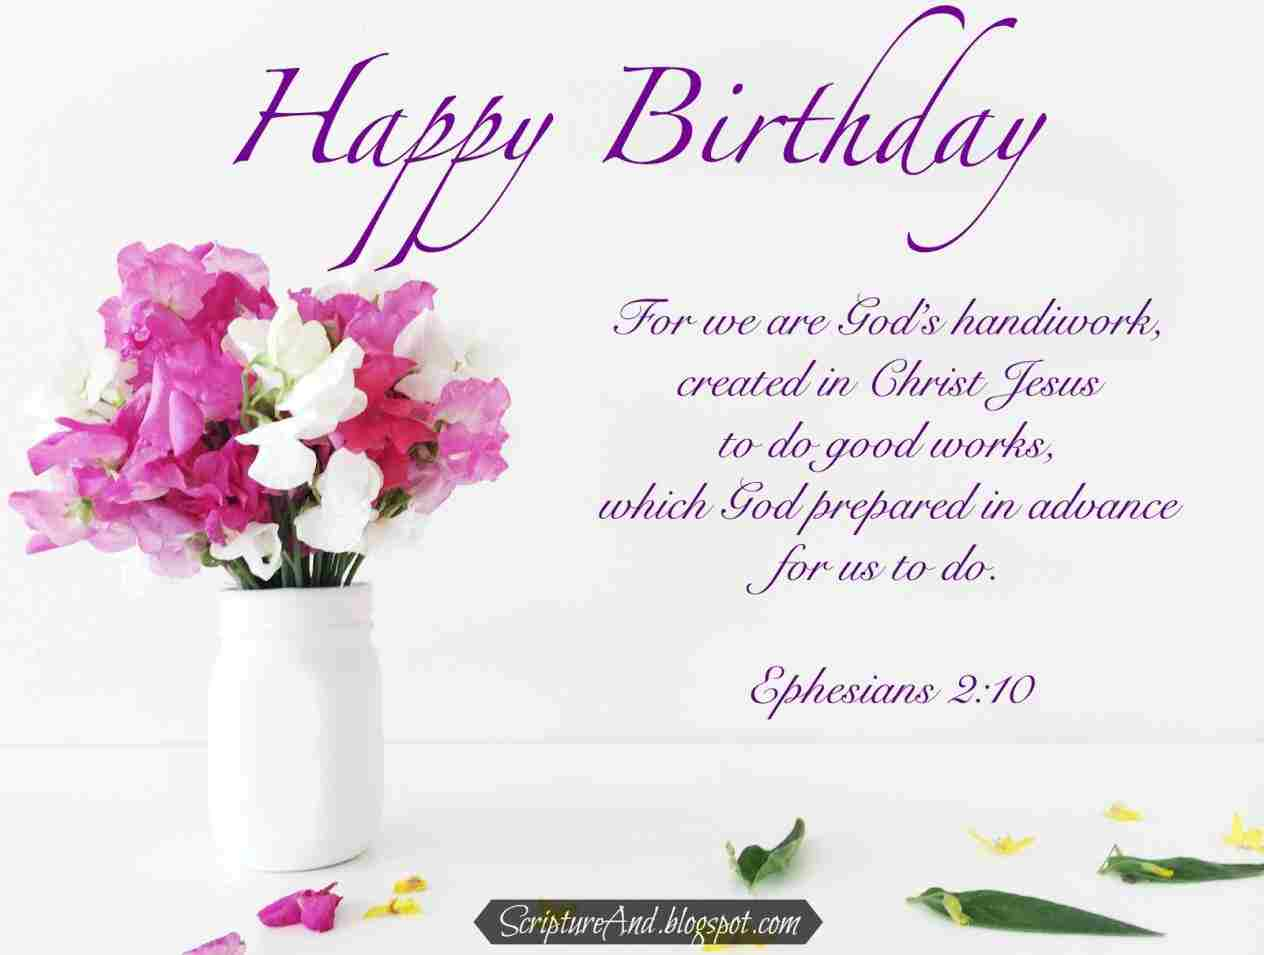 Birthday wishes from the bible birthday info